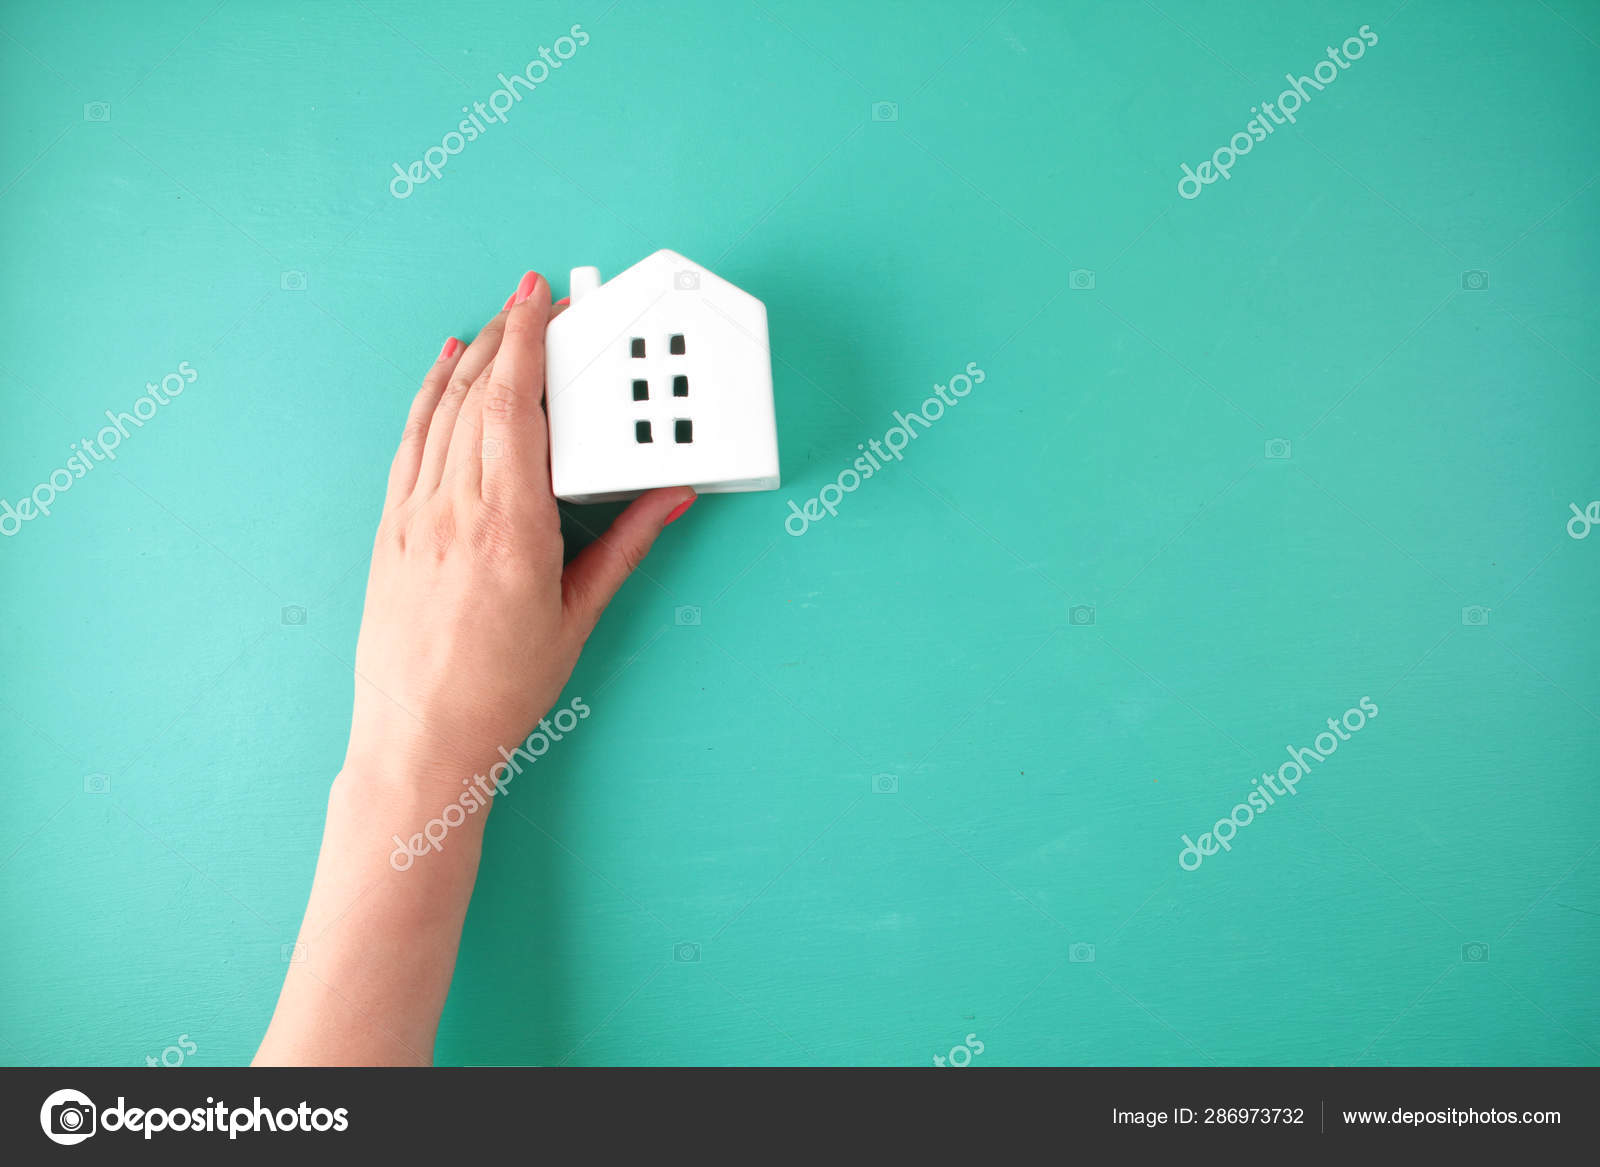 Woman Hand Holding Small Toy House Stock Photo C Netrun78 286973732